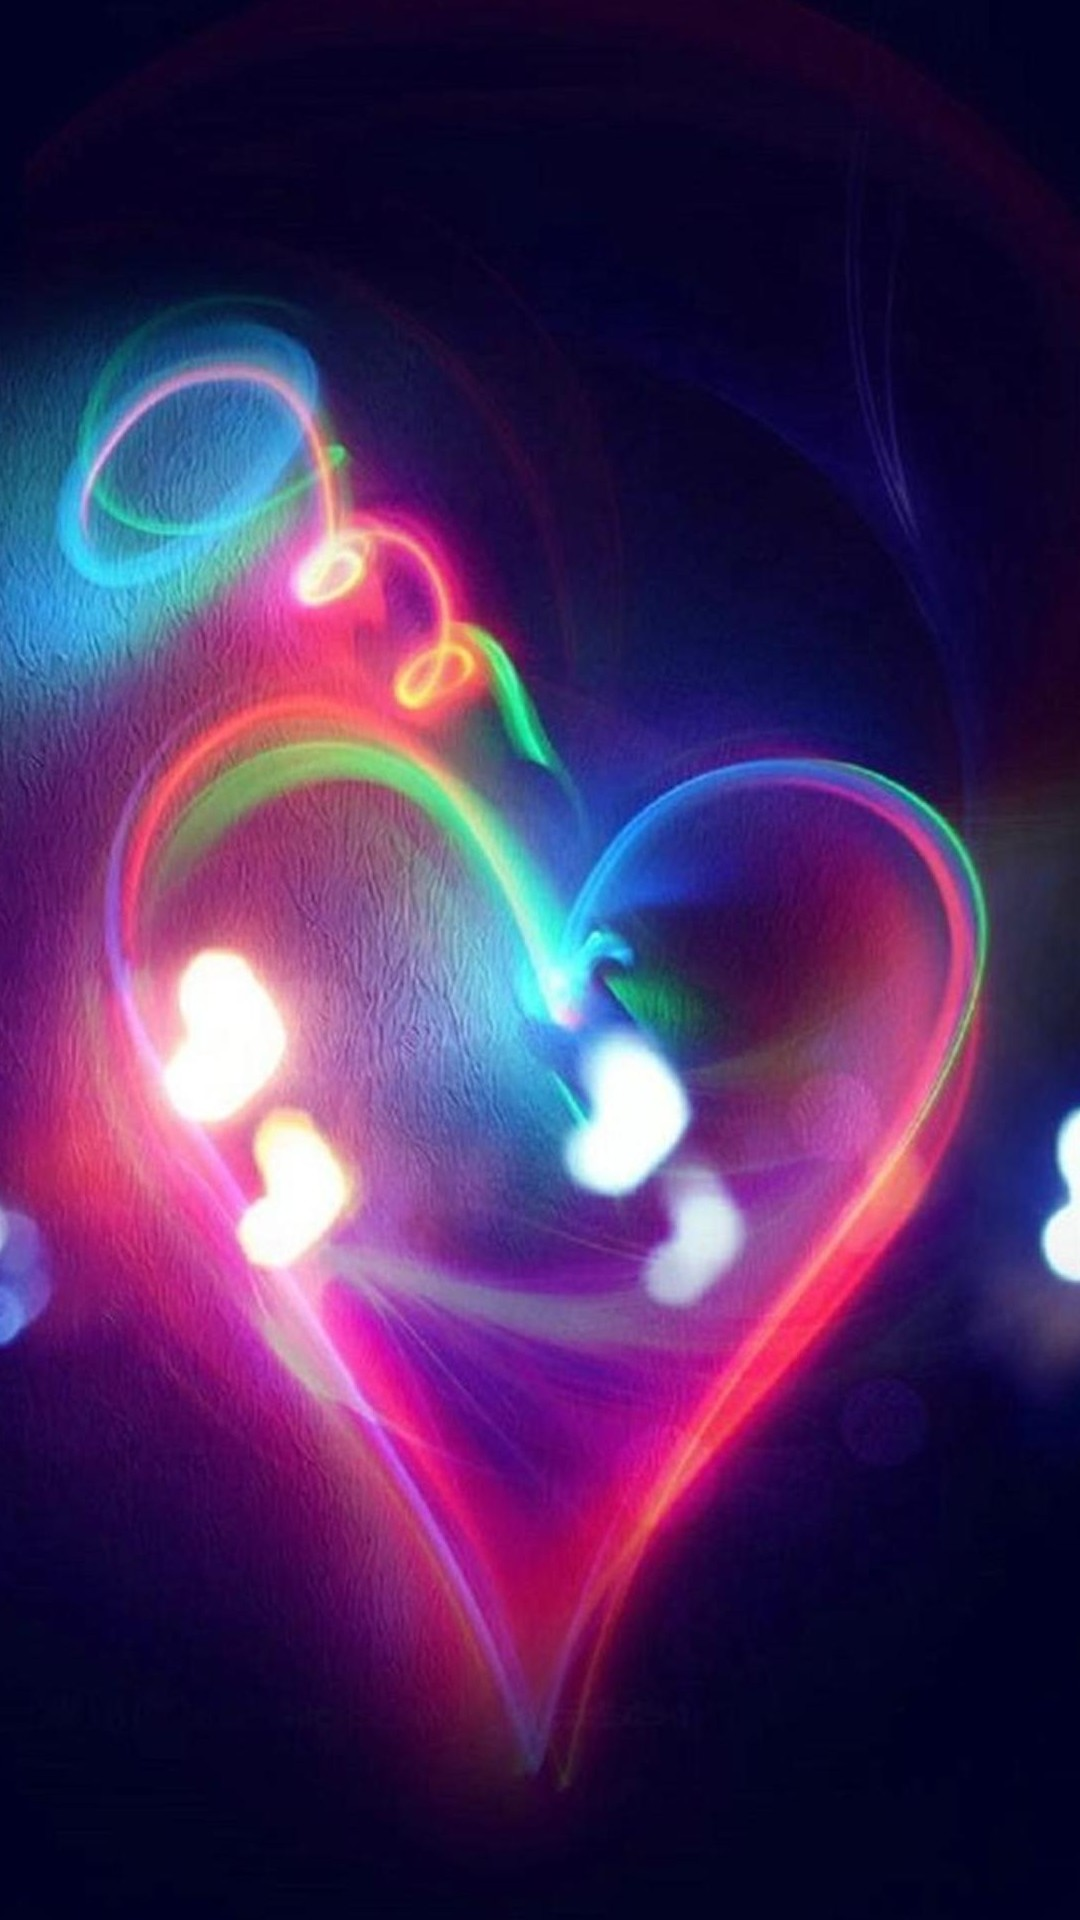 Love Lights Smartphone Wallpapers Hd Glowing Heart 11824 Hd